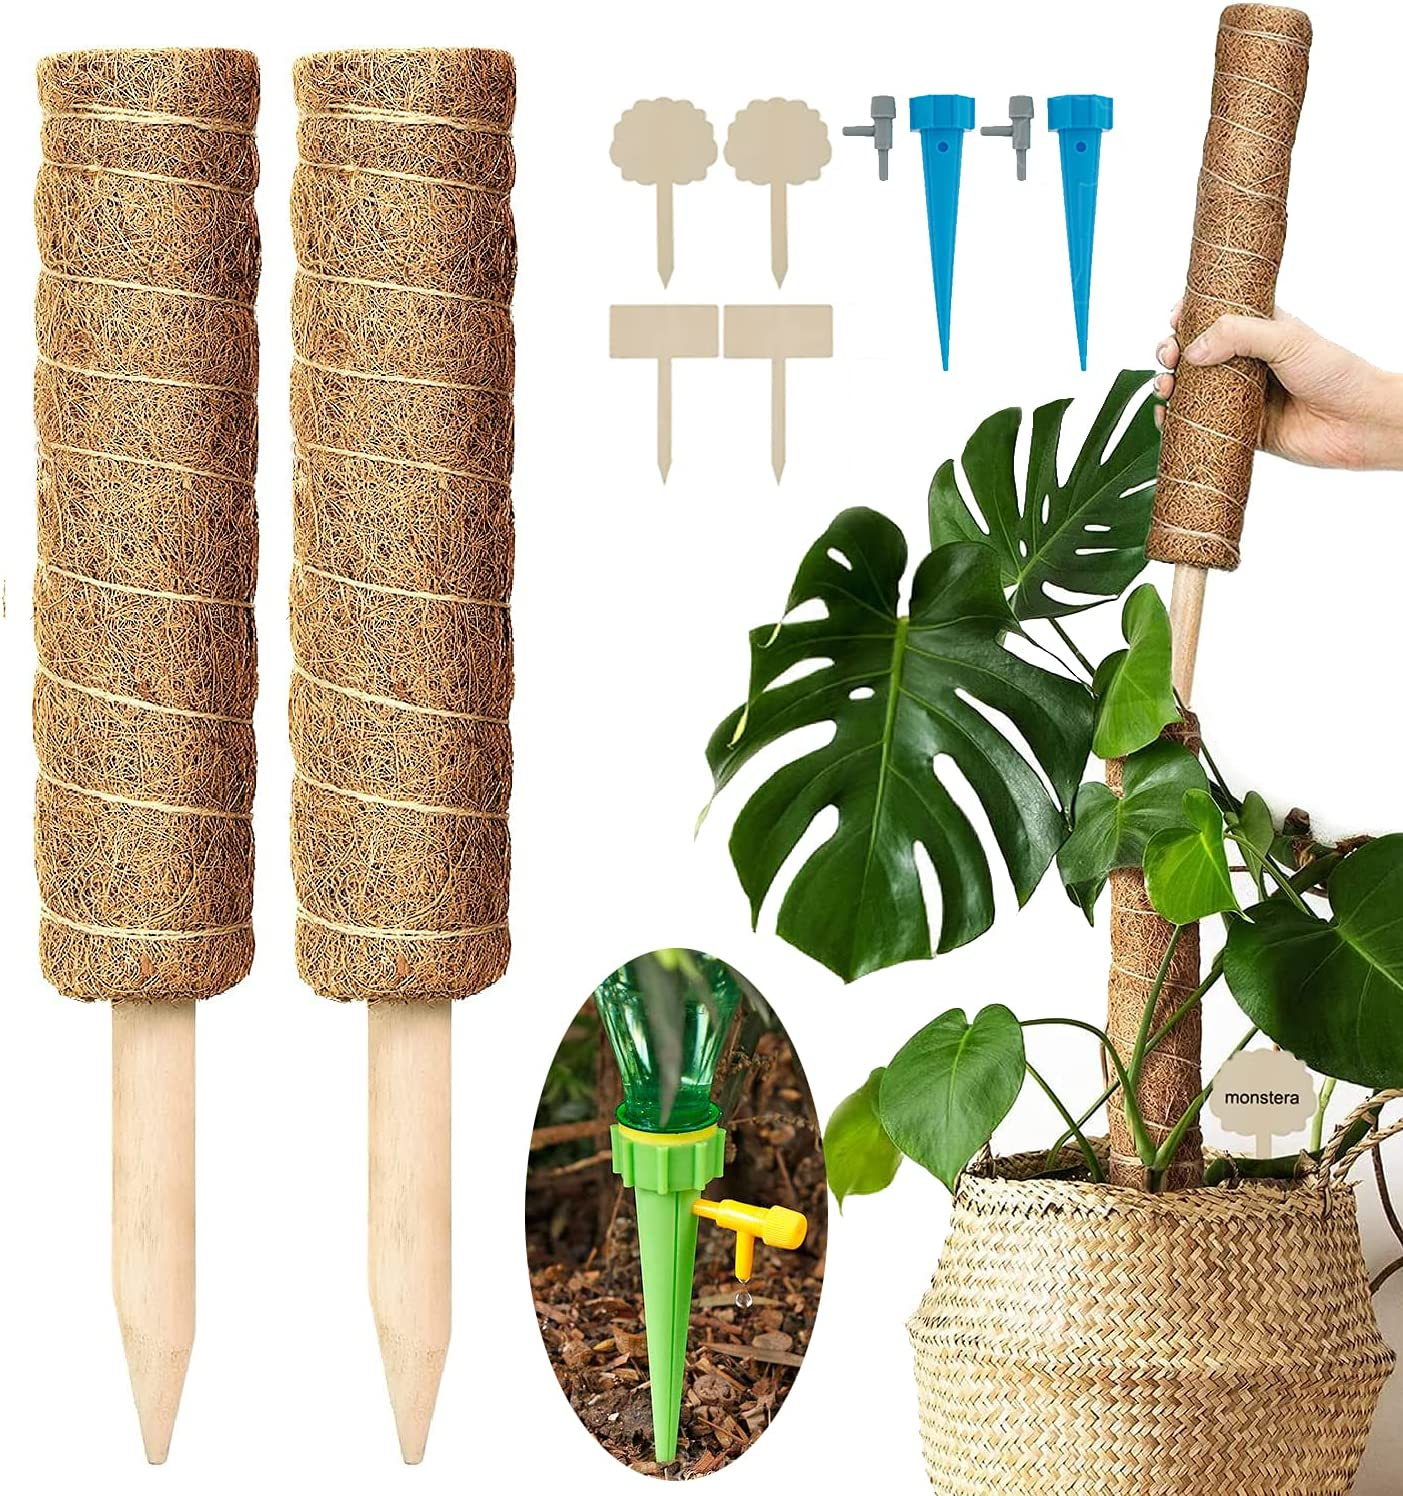 Moss Pole for Max 71% OFF Plants Monstera 2 security Pcs Totem Poles 19.6